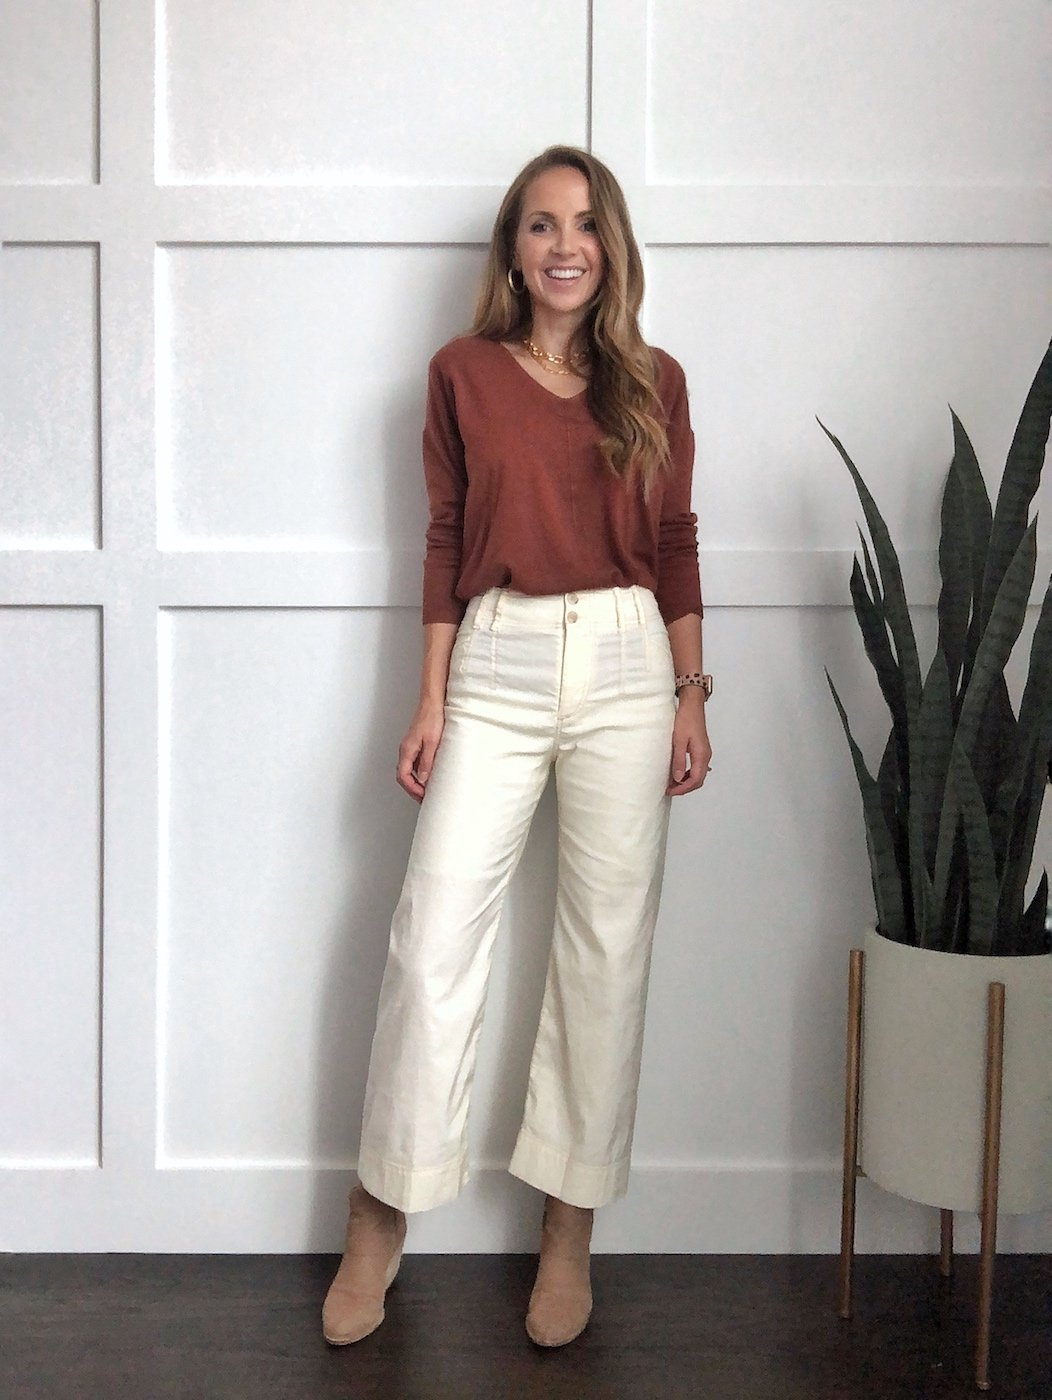 Winter whites outfit: wide leg pants with rust sweater